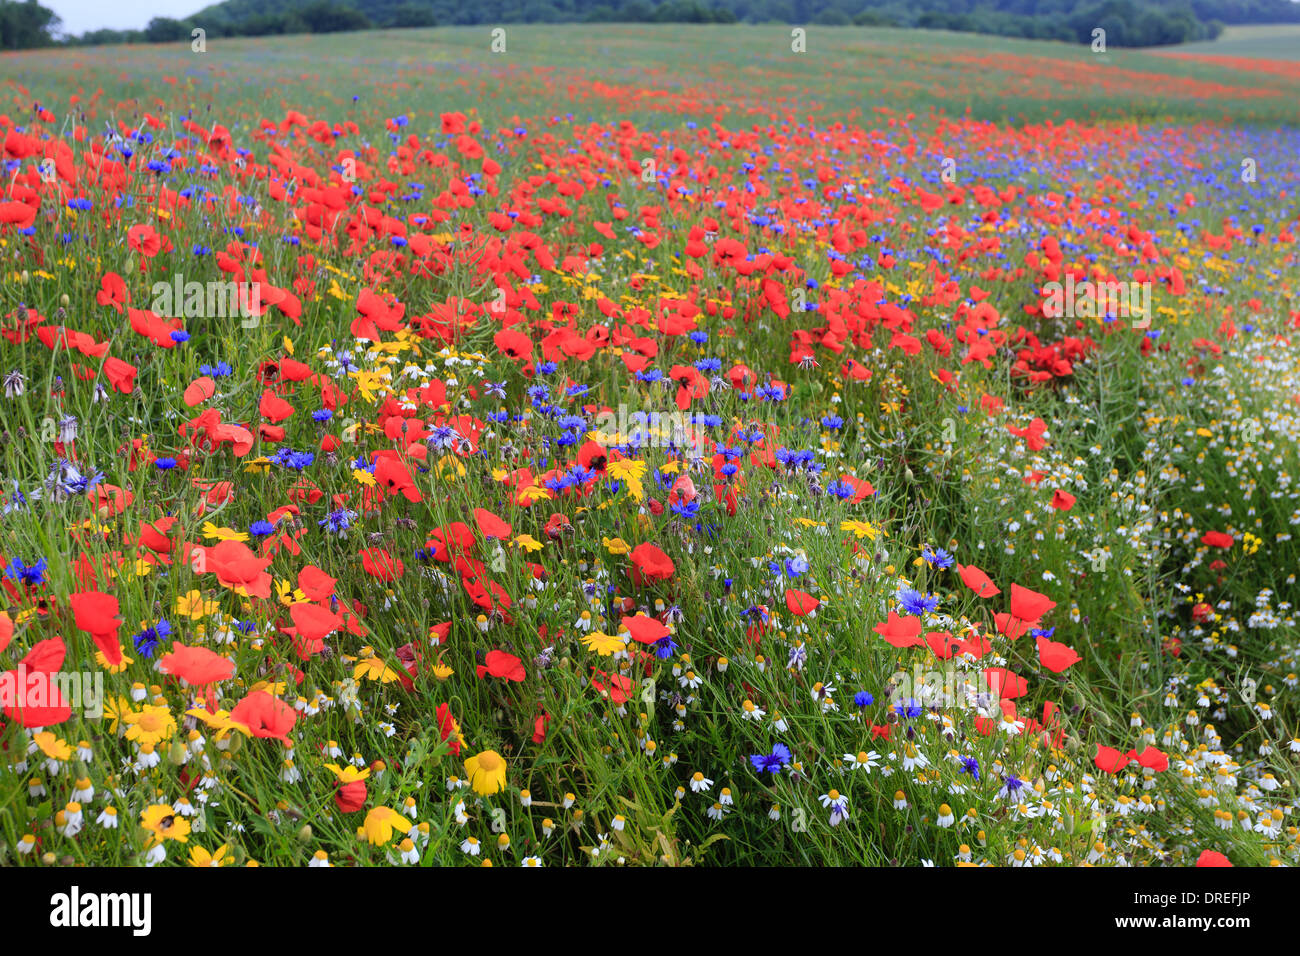 Rapeseed field invaded by arable weeds, cornflower, poppies, chamomile (white) and Corn Marigold (yellow), France, Calvados - Stock Image